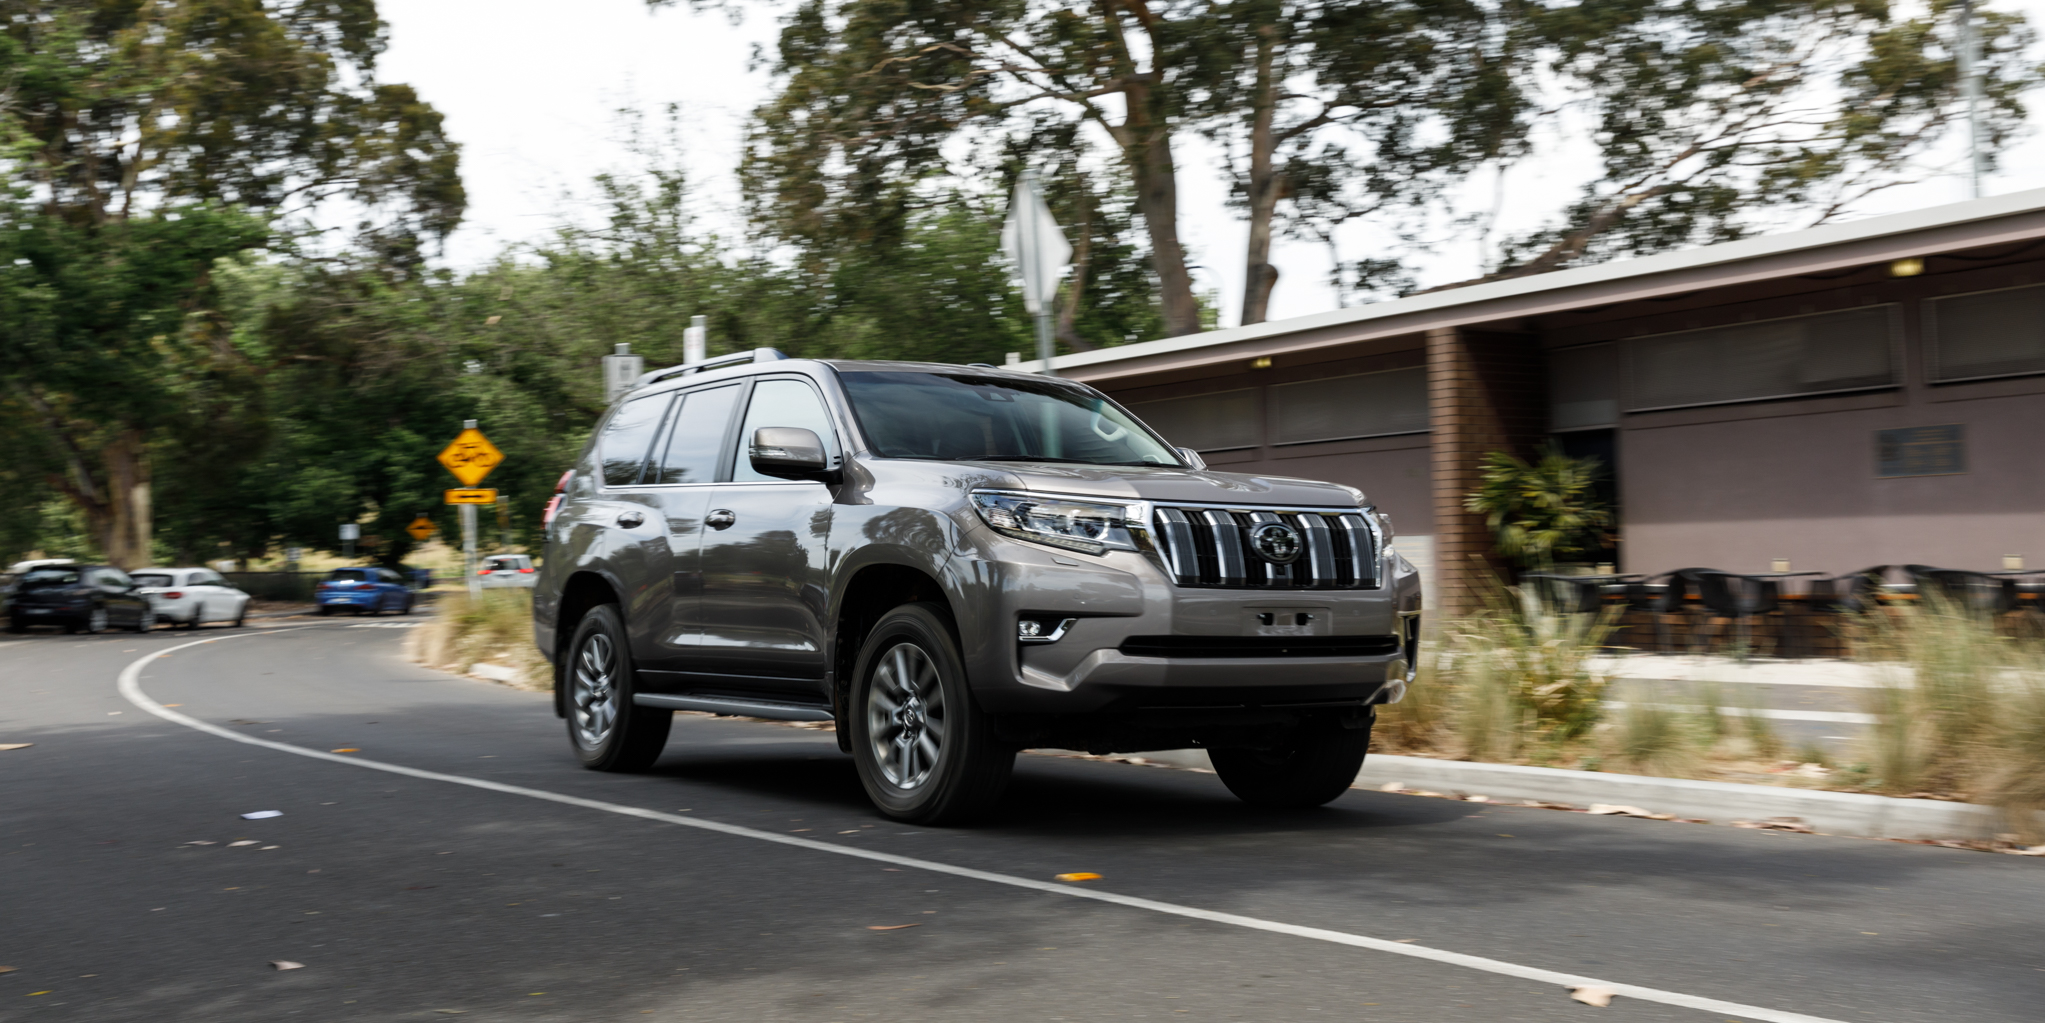 Toyota Land Cruiser Prado photo 183543